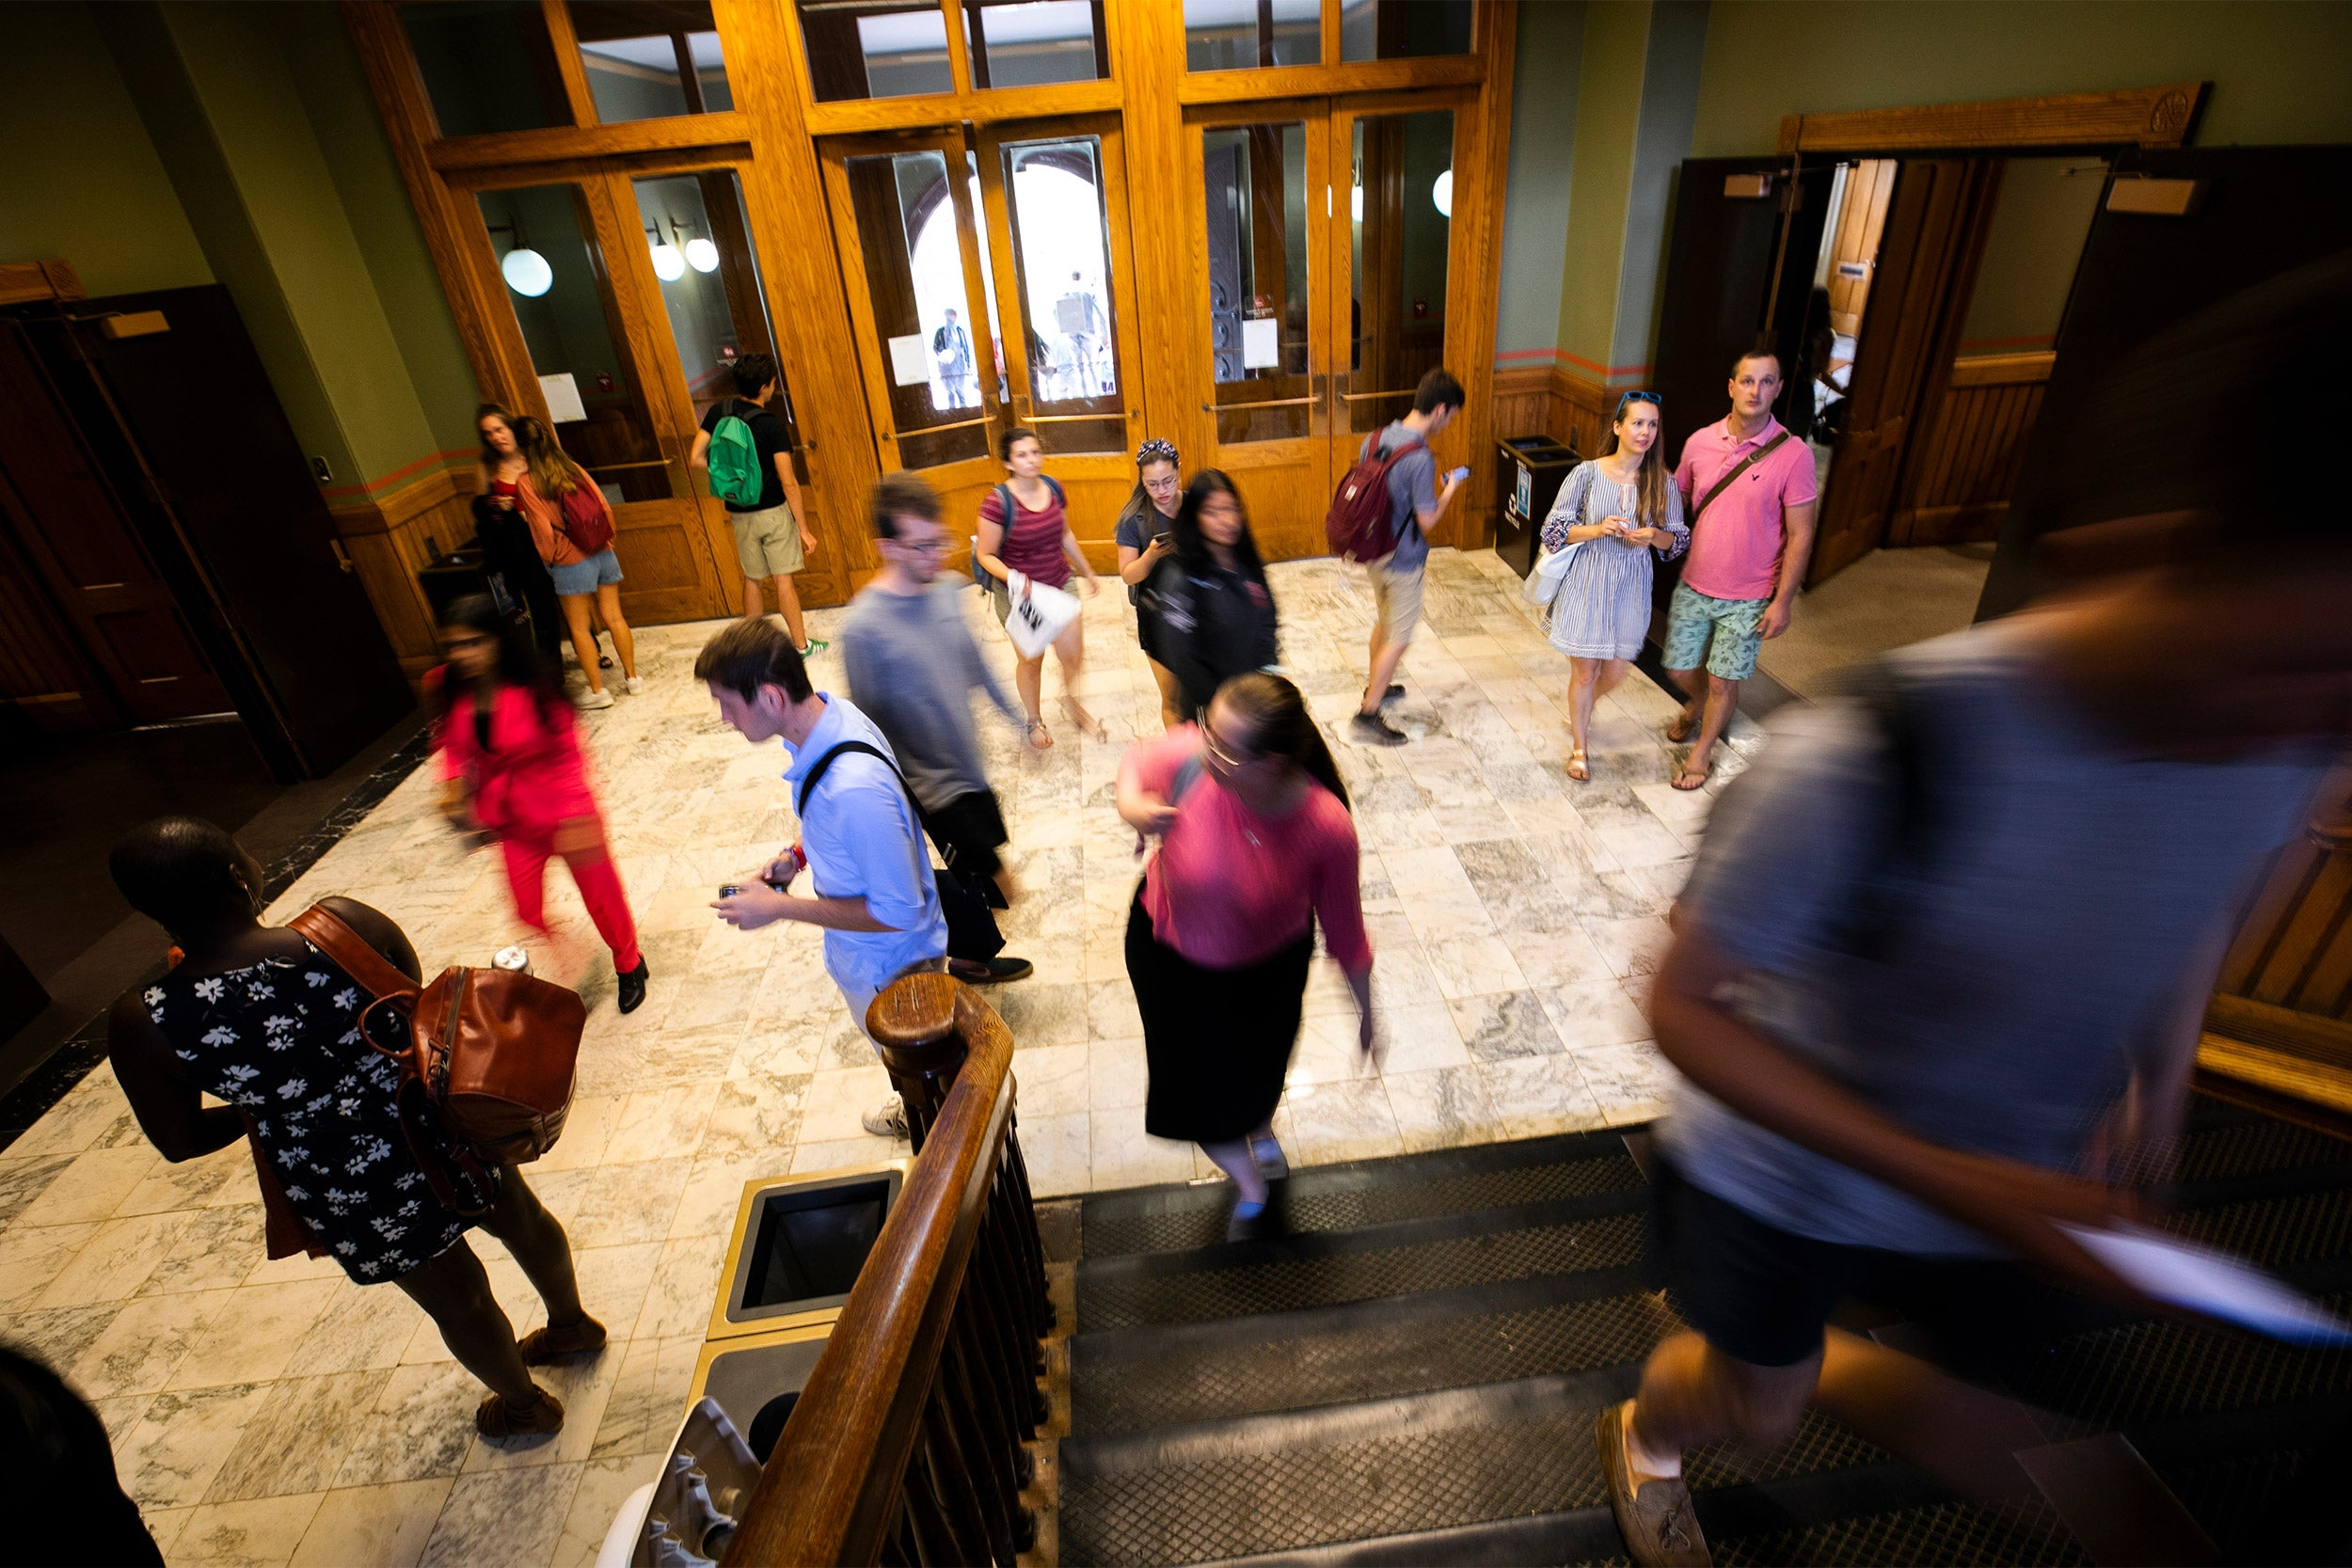 Students in Sever Hall